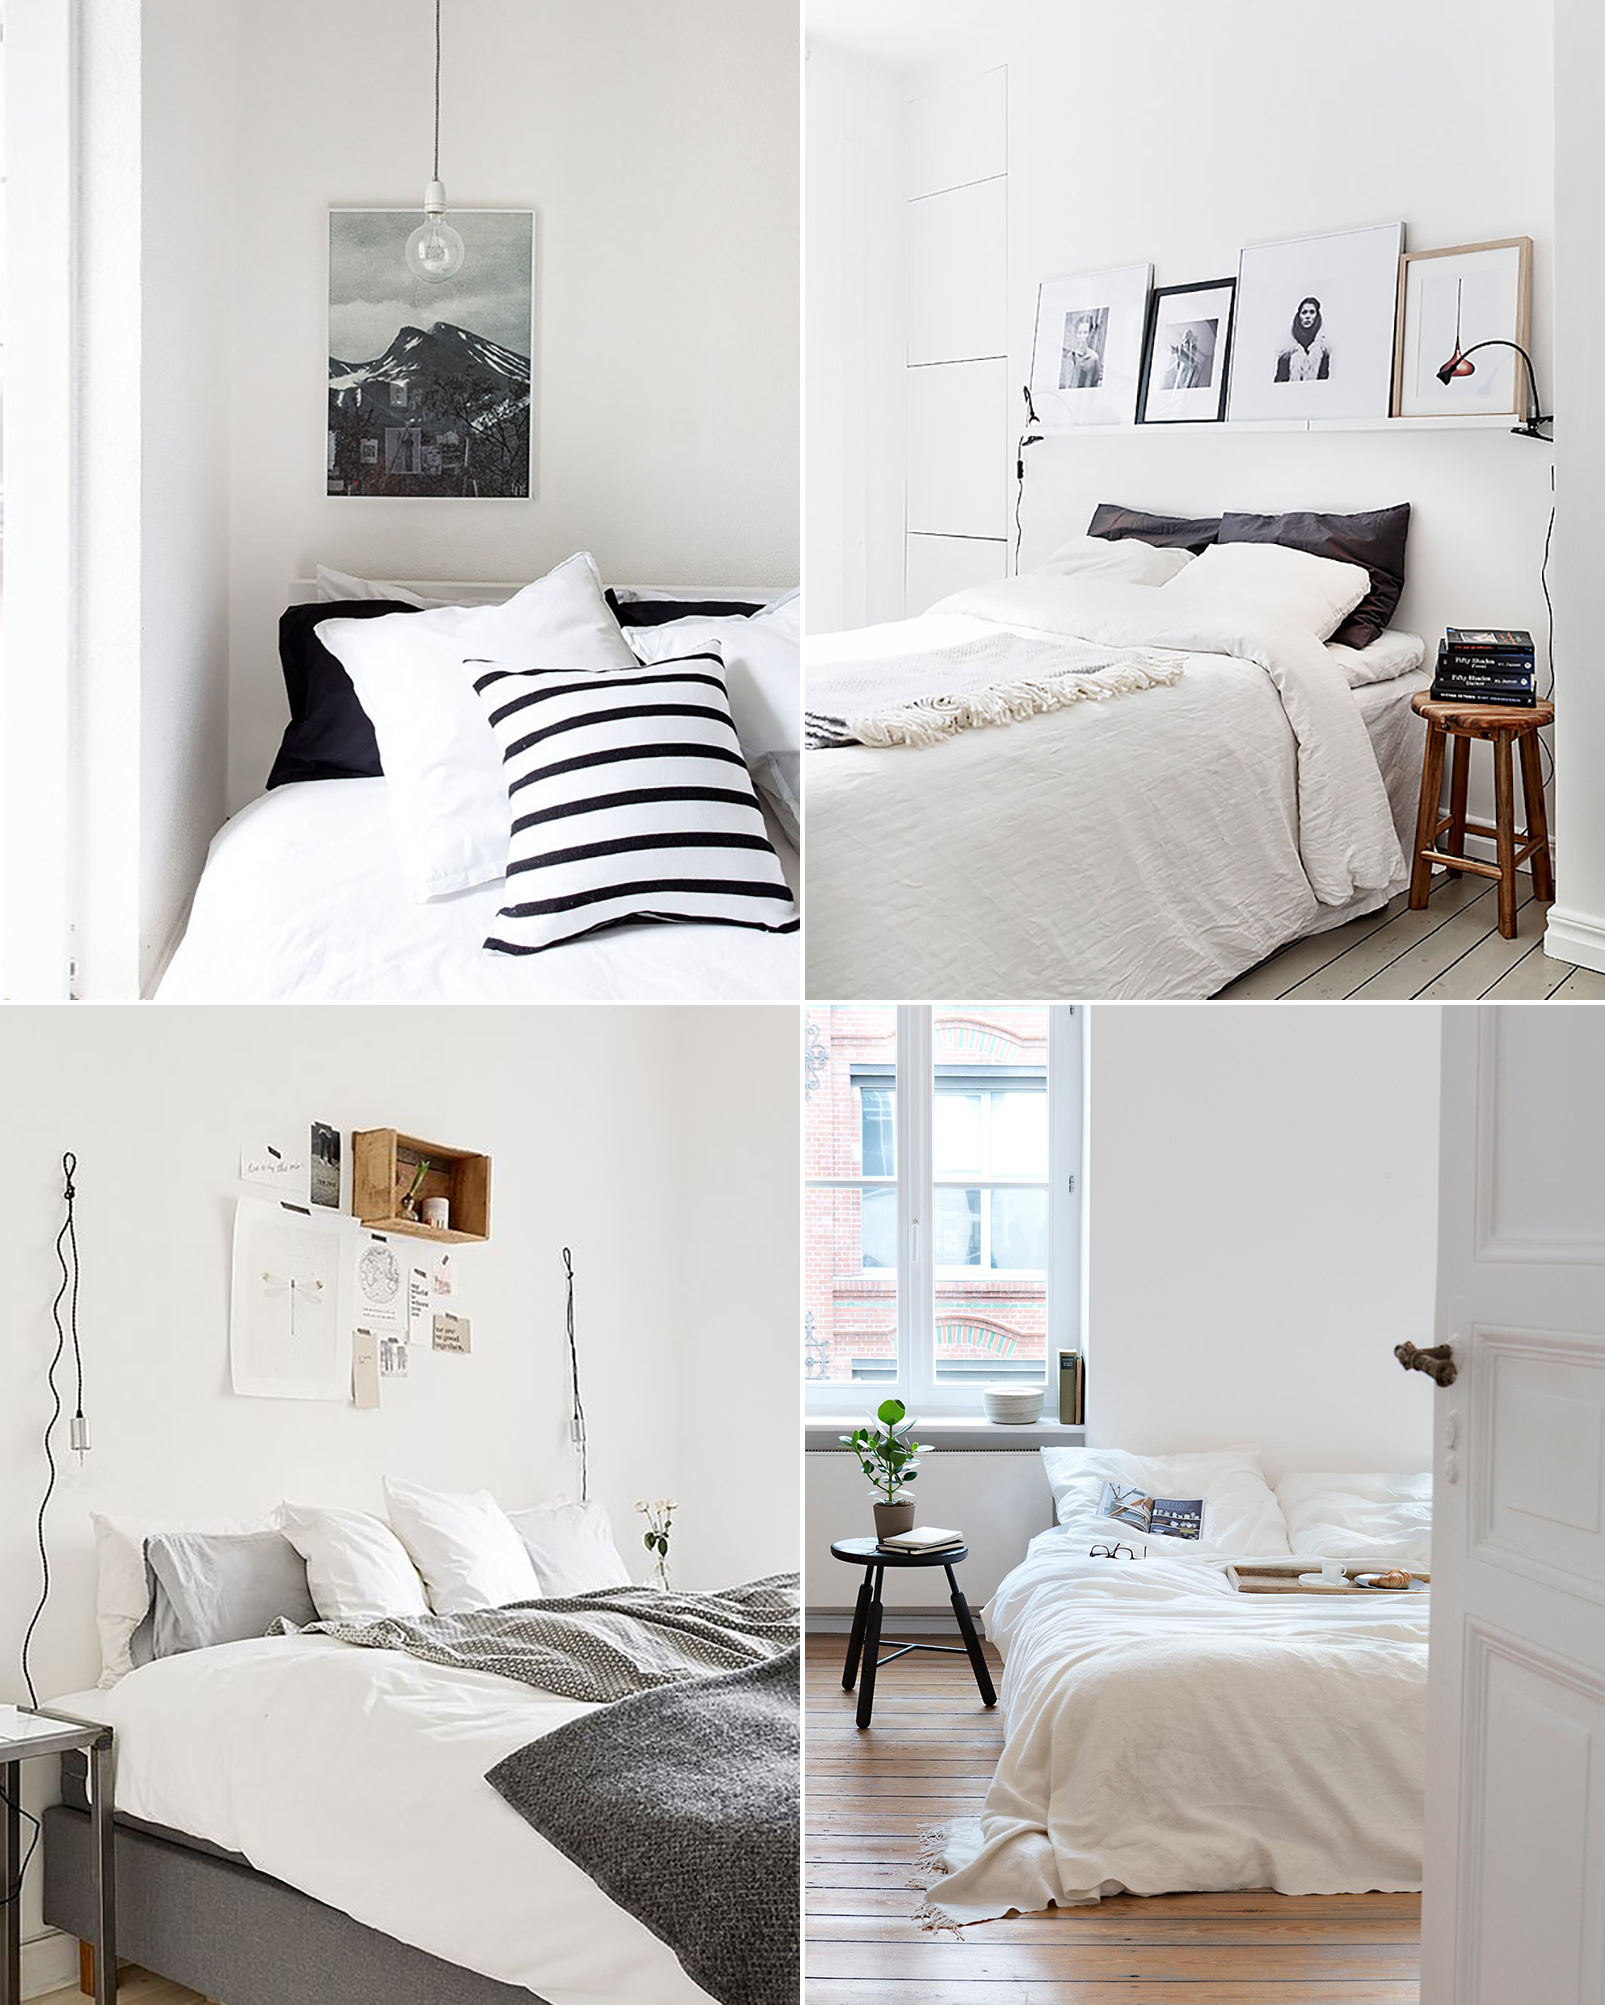 Scandinavian bedroom inspiration - white, grey, simple, minimalist, natural wood